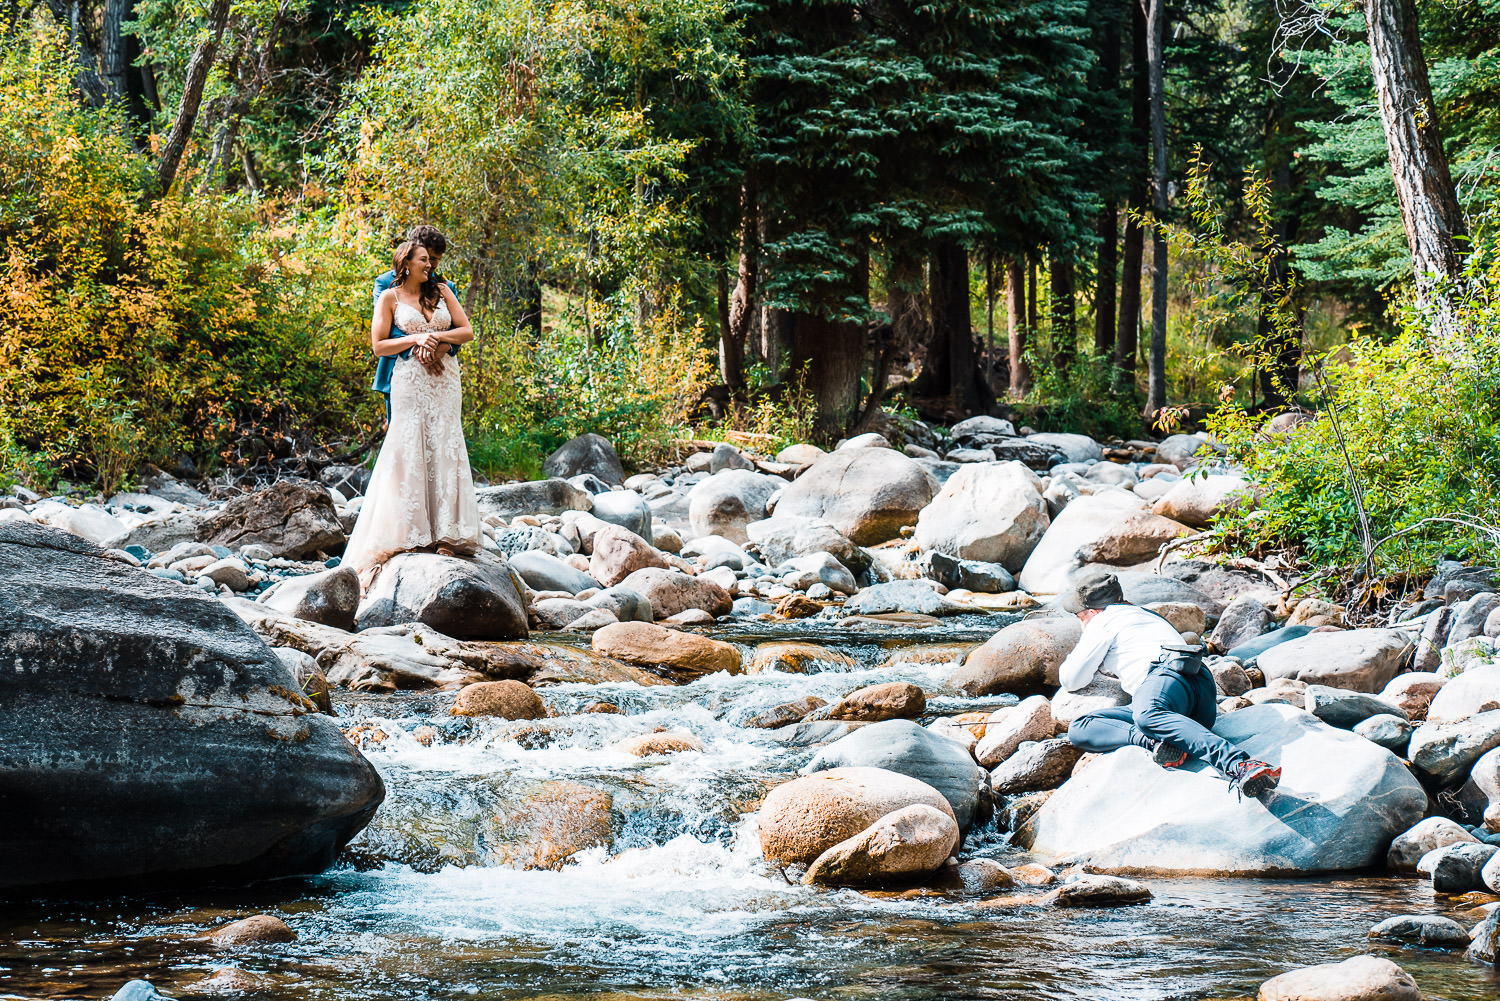 Best_Of_2019_Elopements_Weddings_Colorado-123